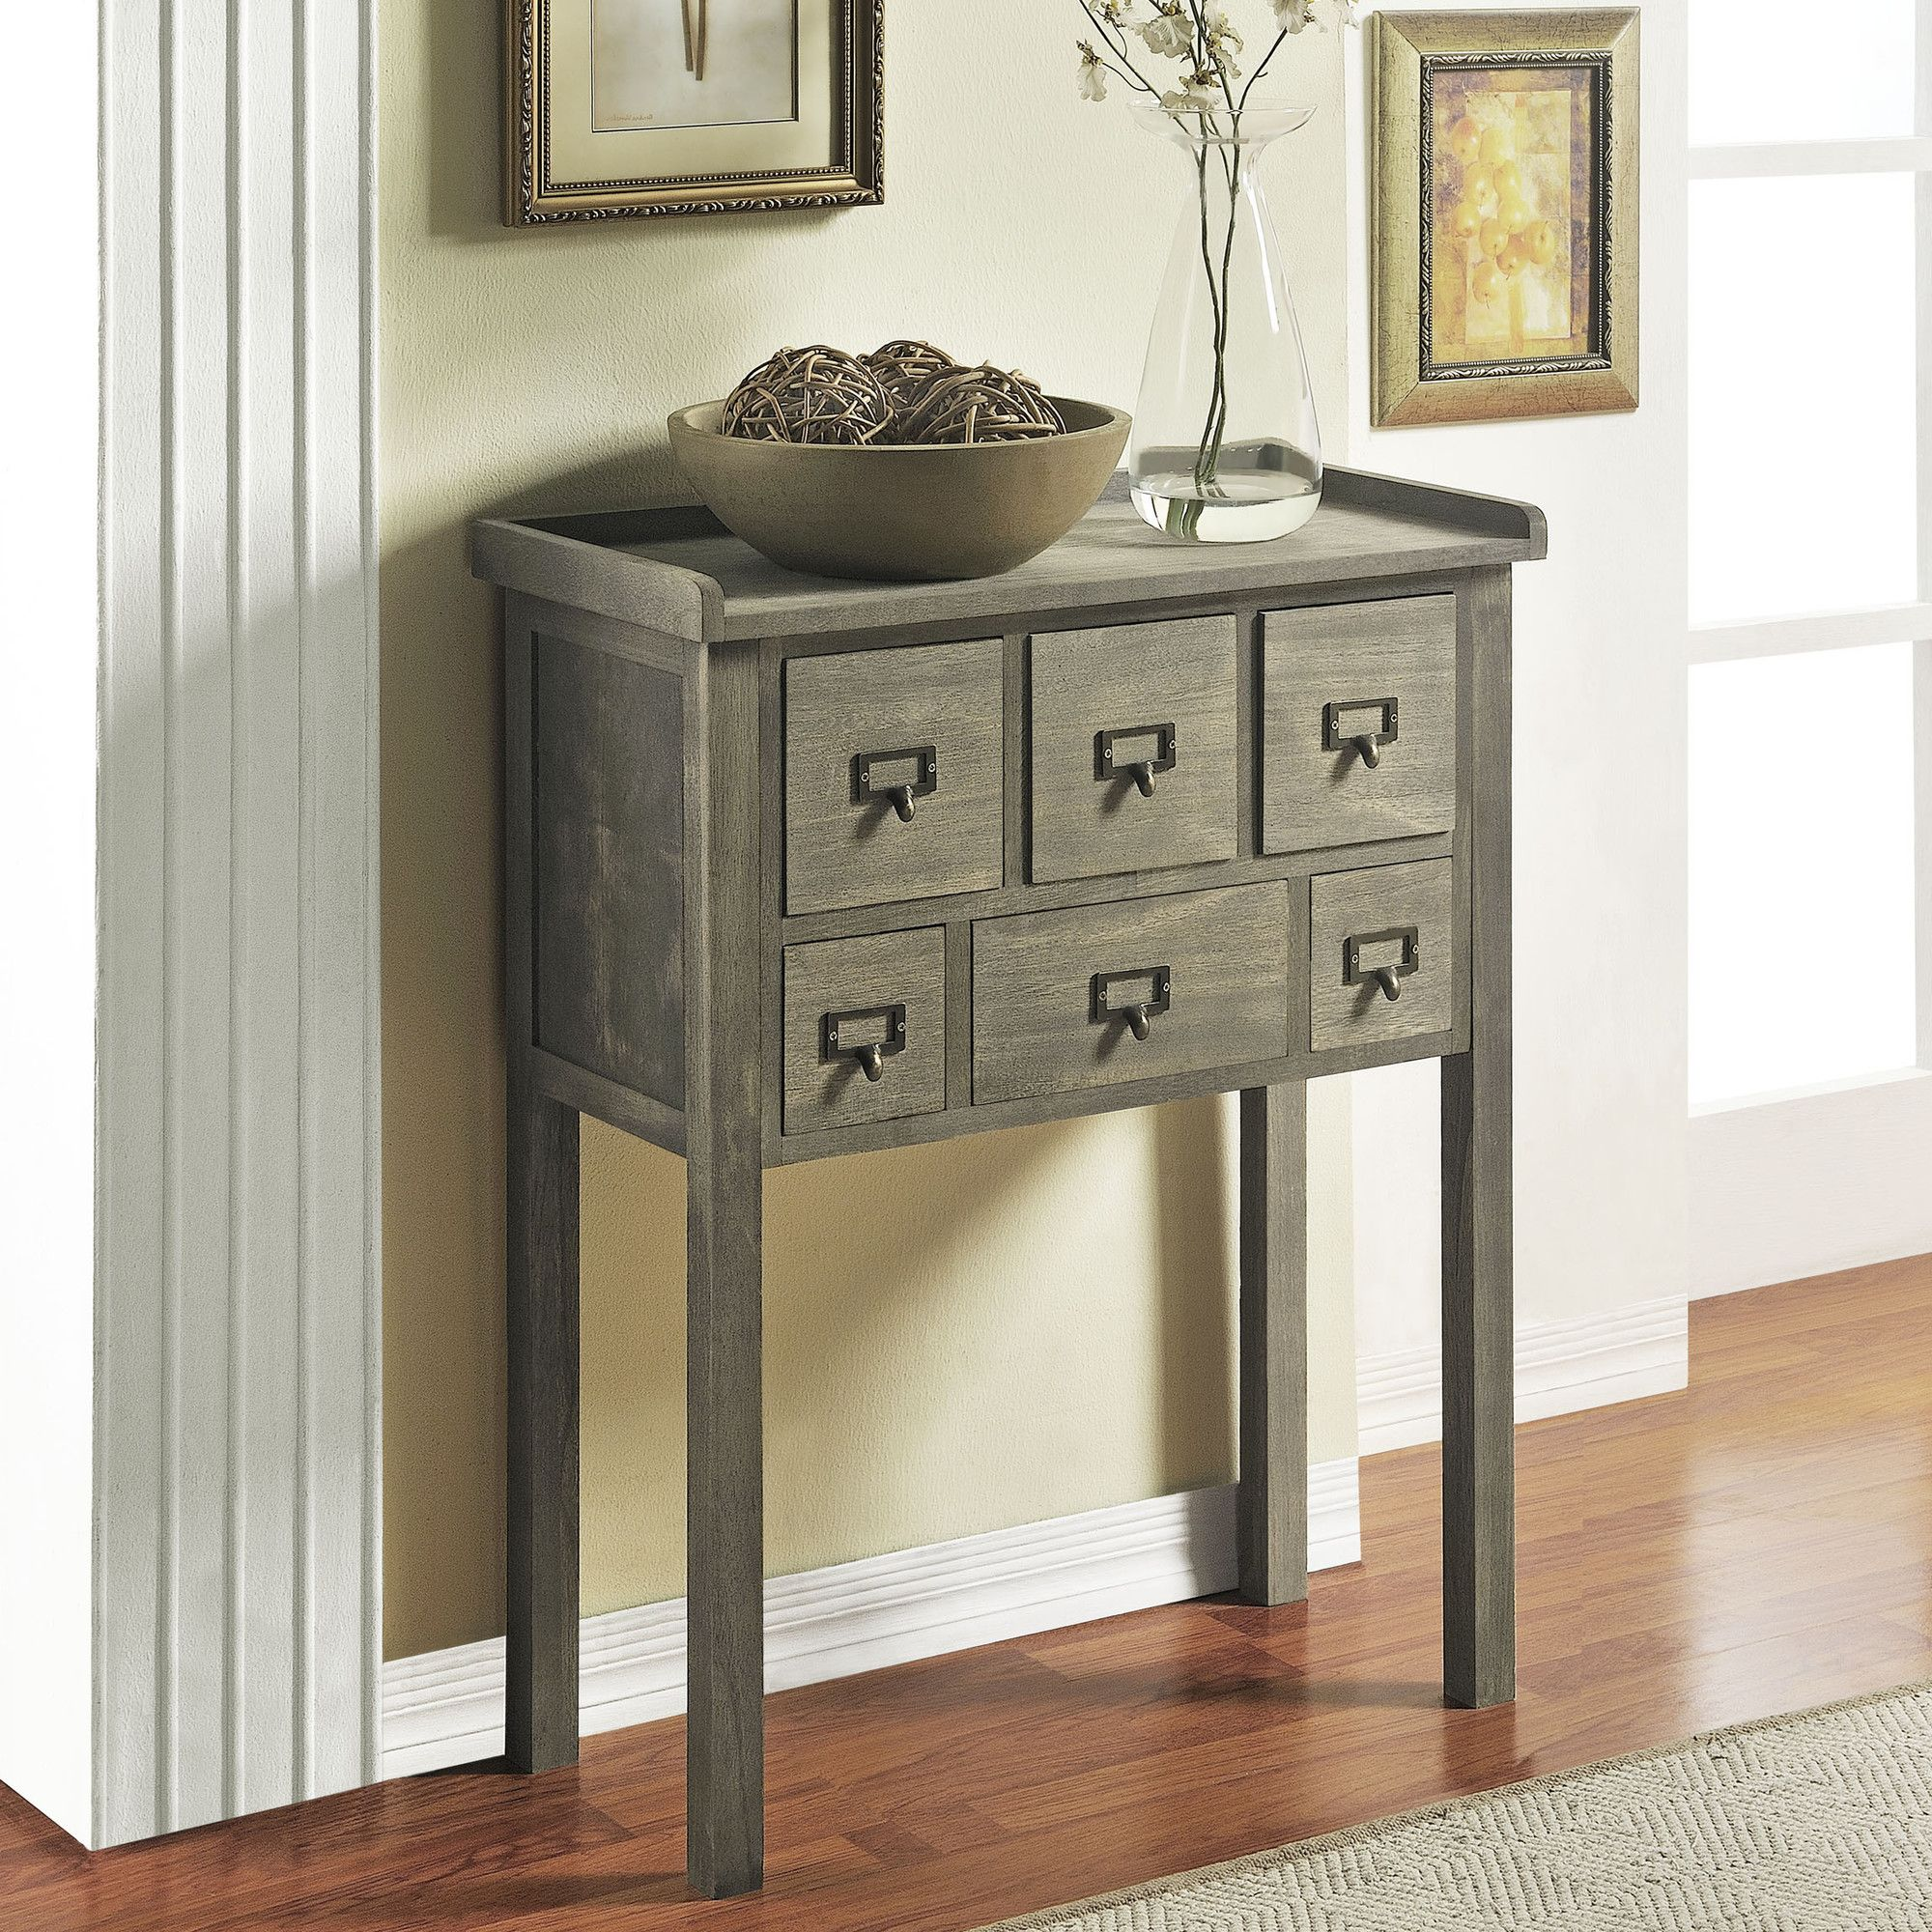 For my front hallway Altra Furniture 6 drawer